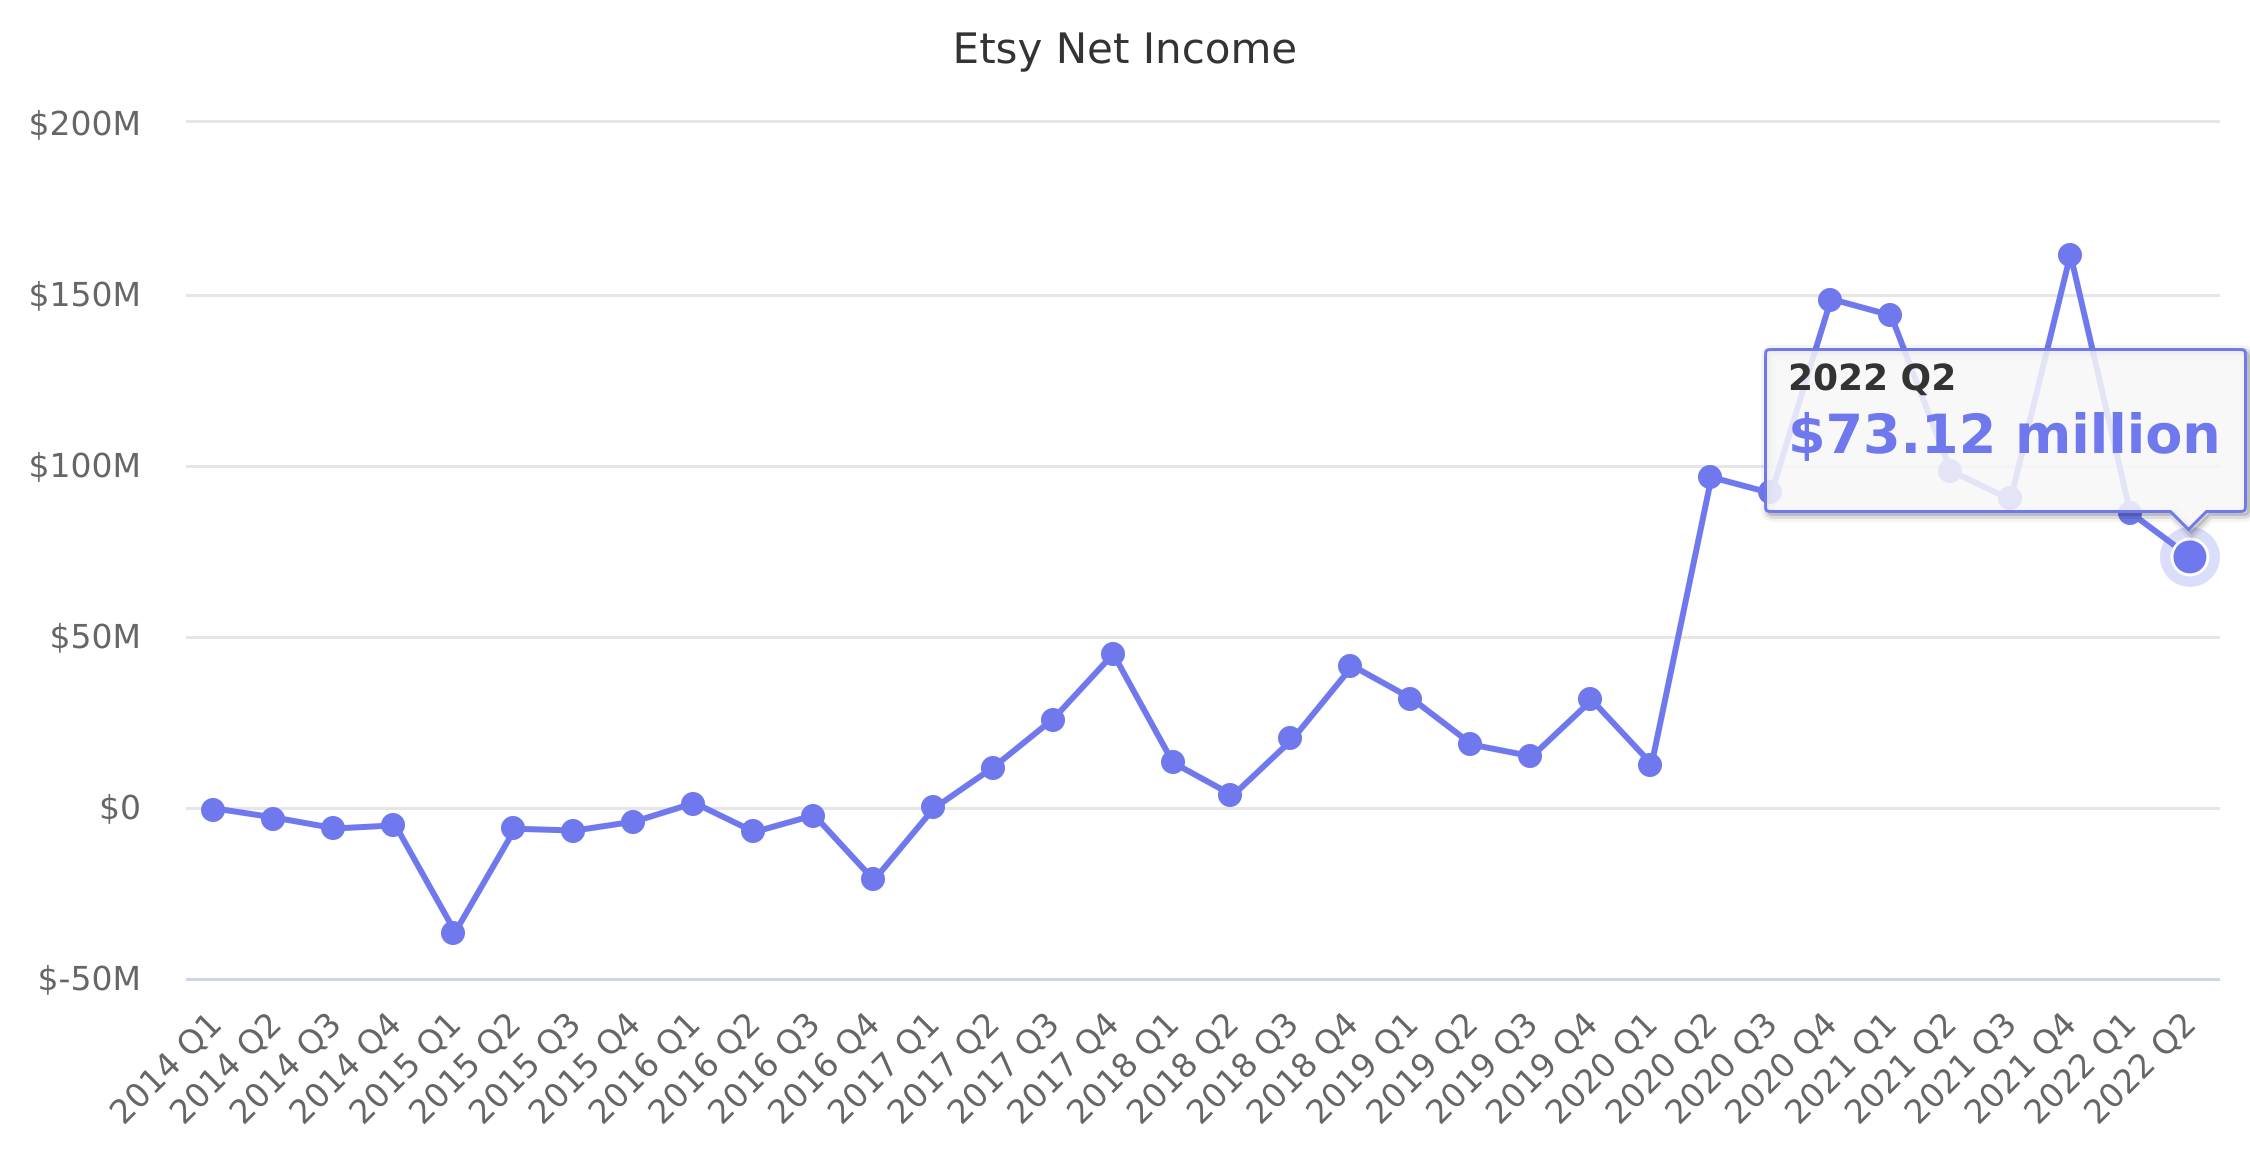 Etsy Net Income 2014-2018